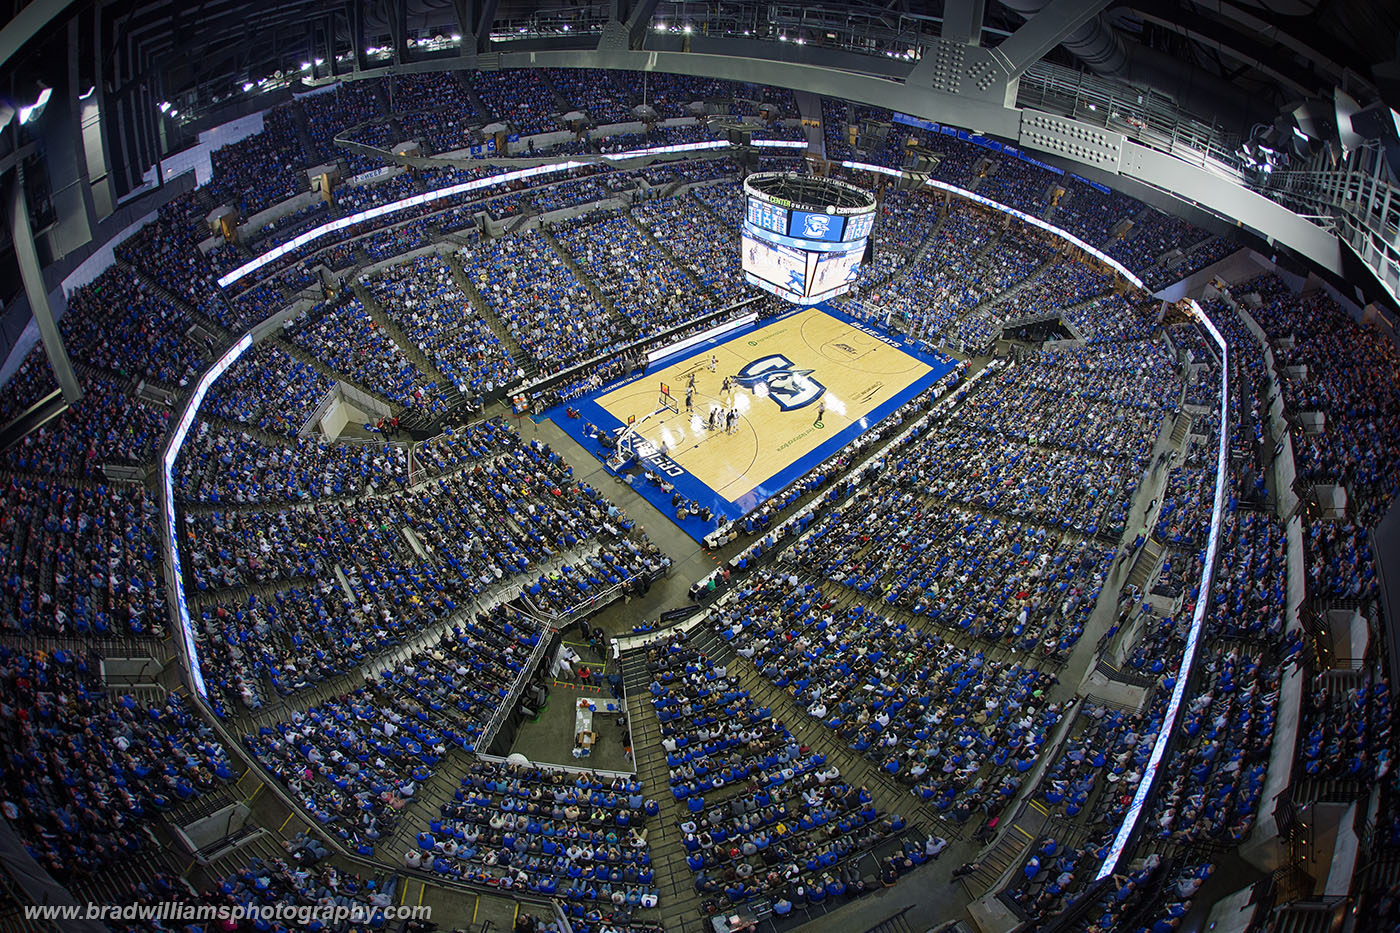 Creighton, Unversity, Basketball, CenturyLink Center, Omaha, Nebraska, photo